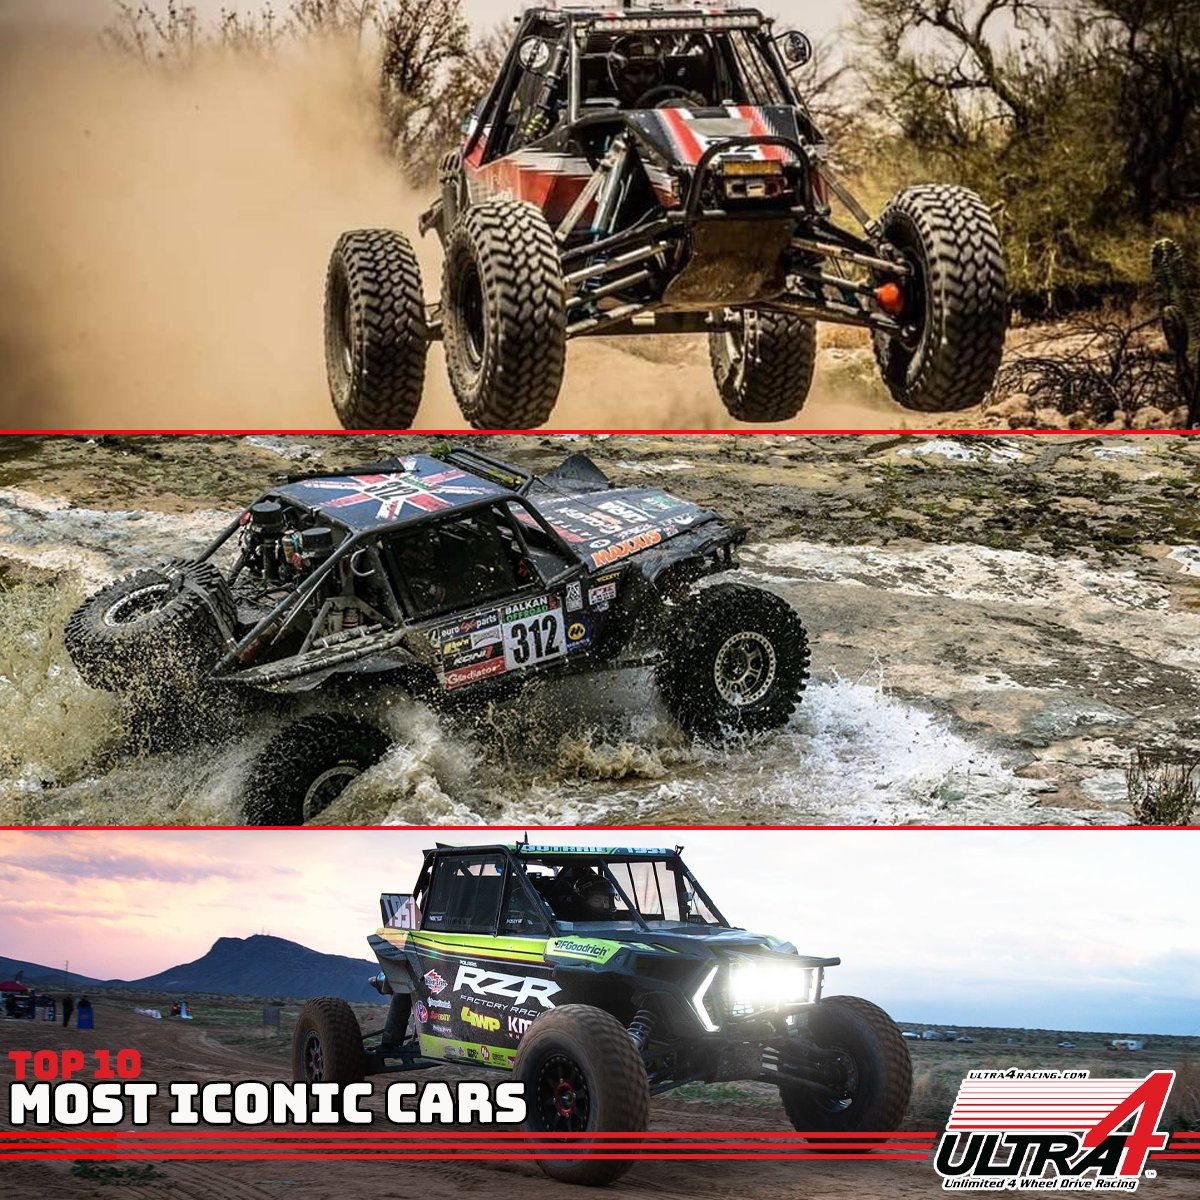 Weve got some amazing contenders for the Top 10 Most Iconic Ultra4 Cars list -- heres one last chance to nominate your favorites! Nominees will be voted on by drivers and the Top 10 will be revealed leading up to #KOH2020! #Ultra4 #KingoftheHammers #MostIconicCar